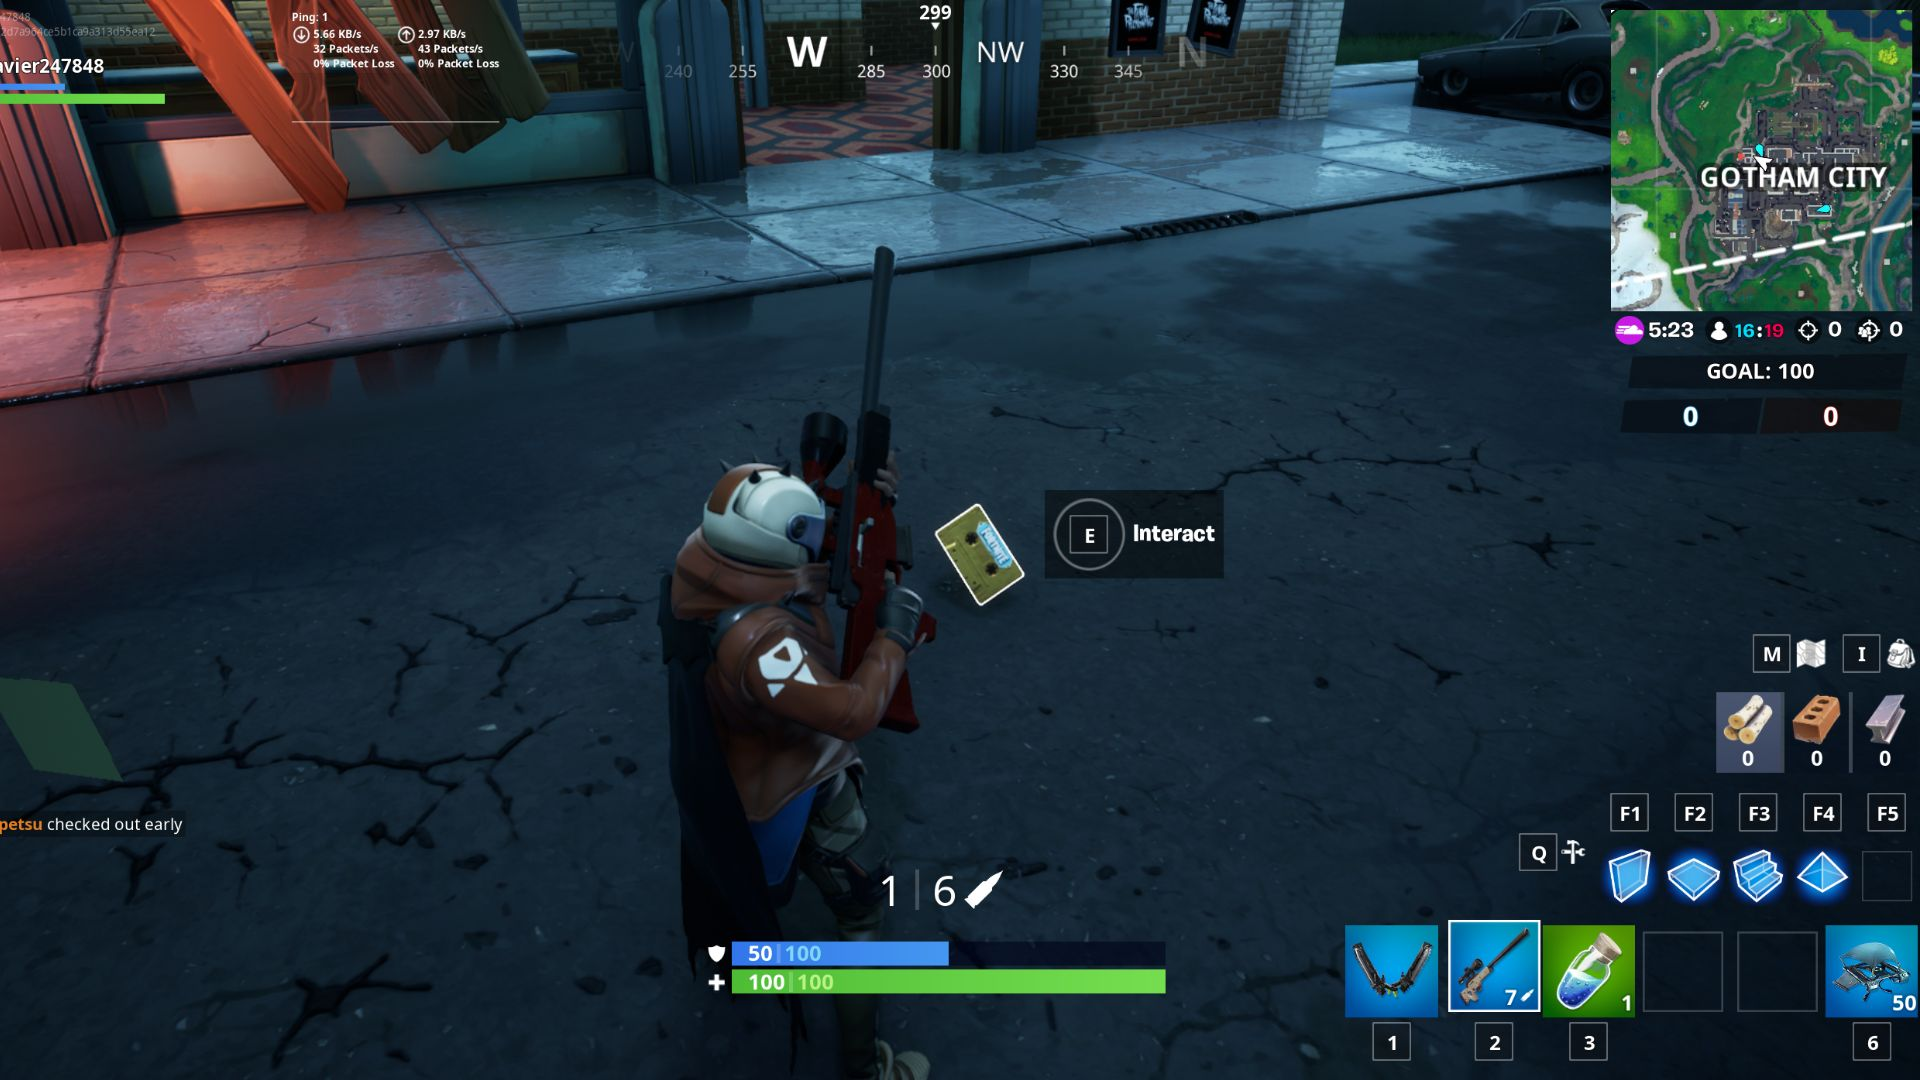 Fortnite Visitor Recordings Starry Suburbs Gotham City